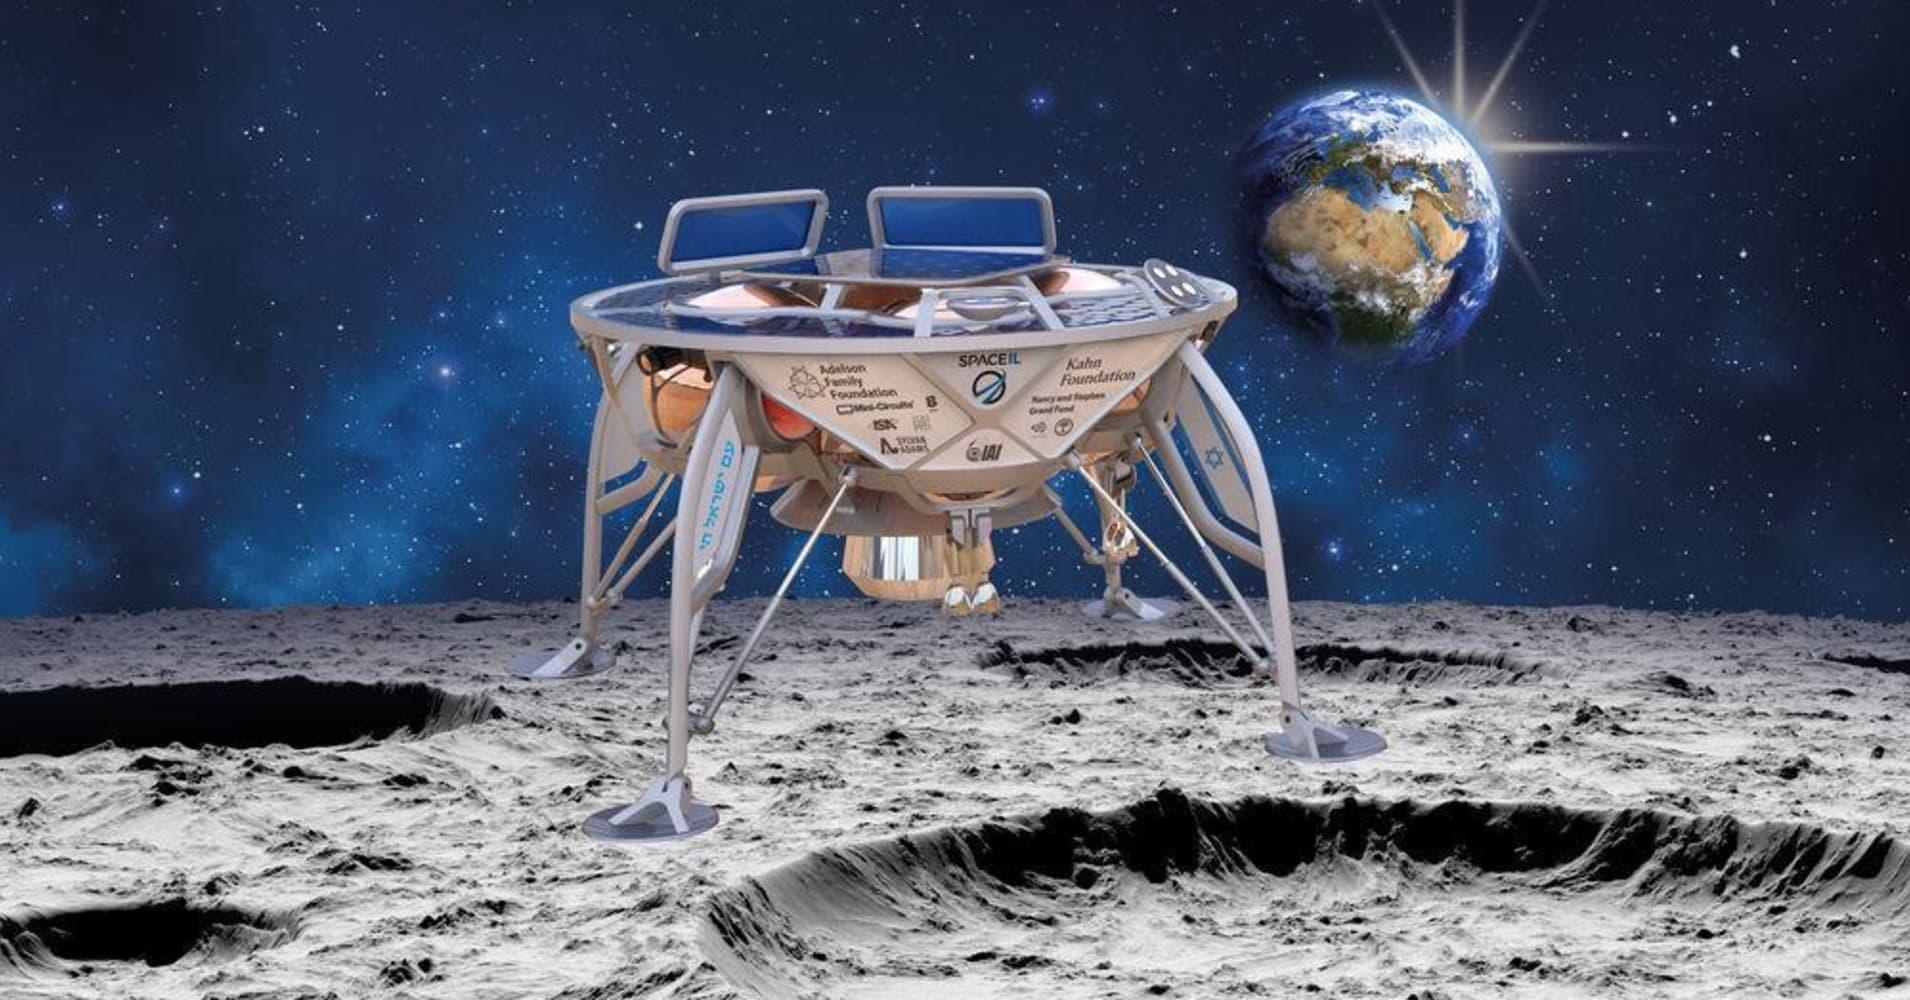 SpaceX powering Israeli spacecraft in first privately-funded moon mission